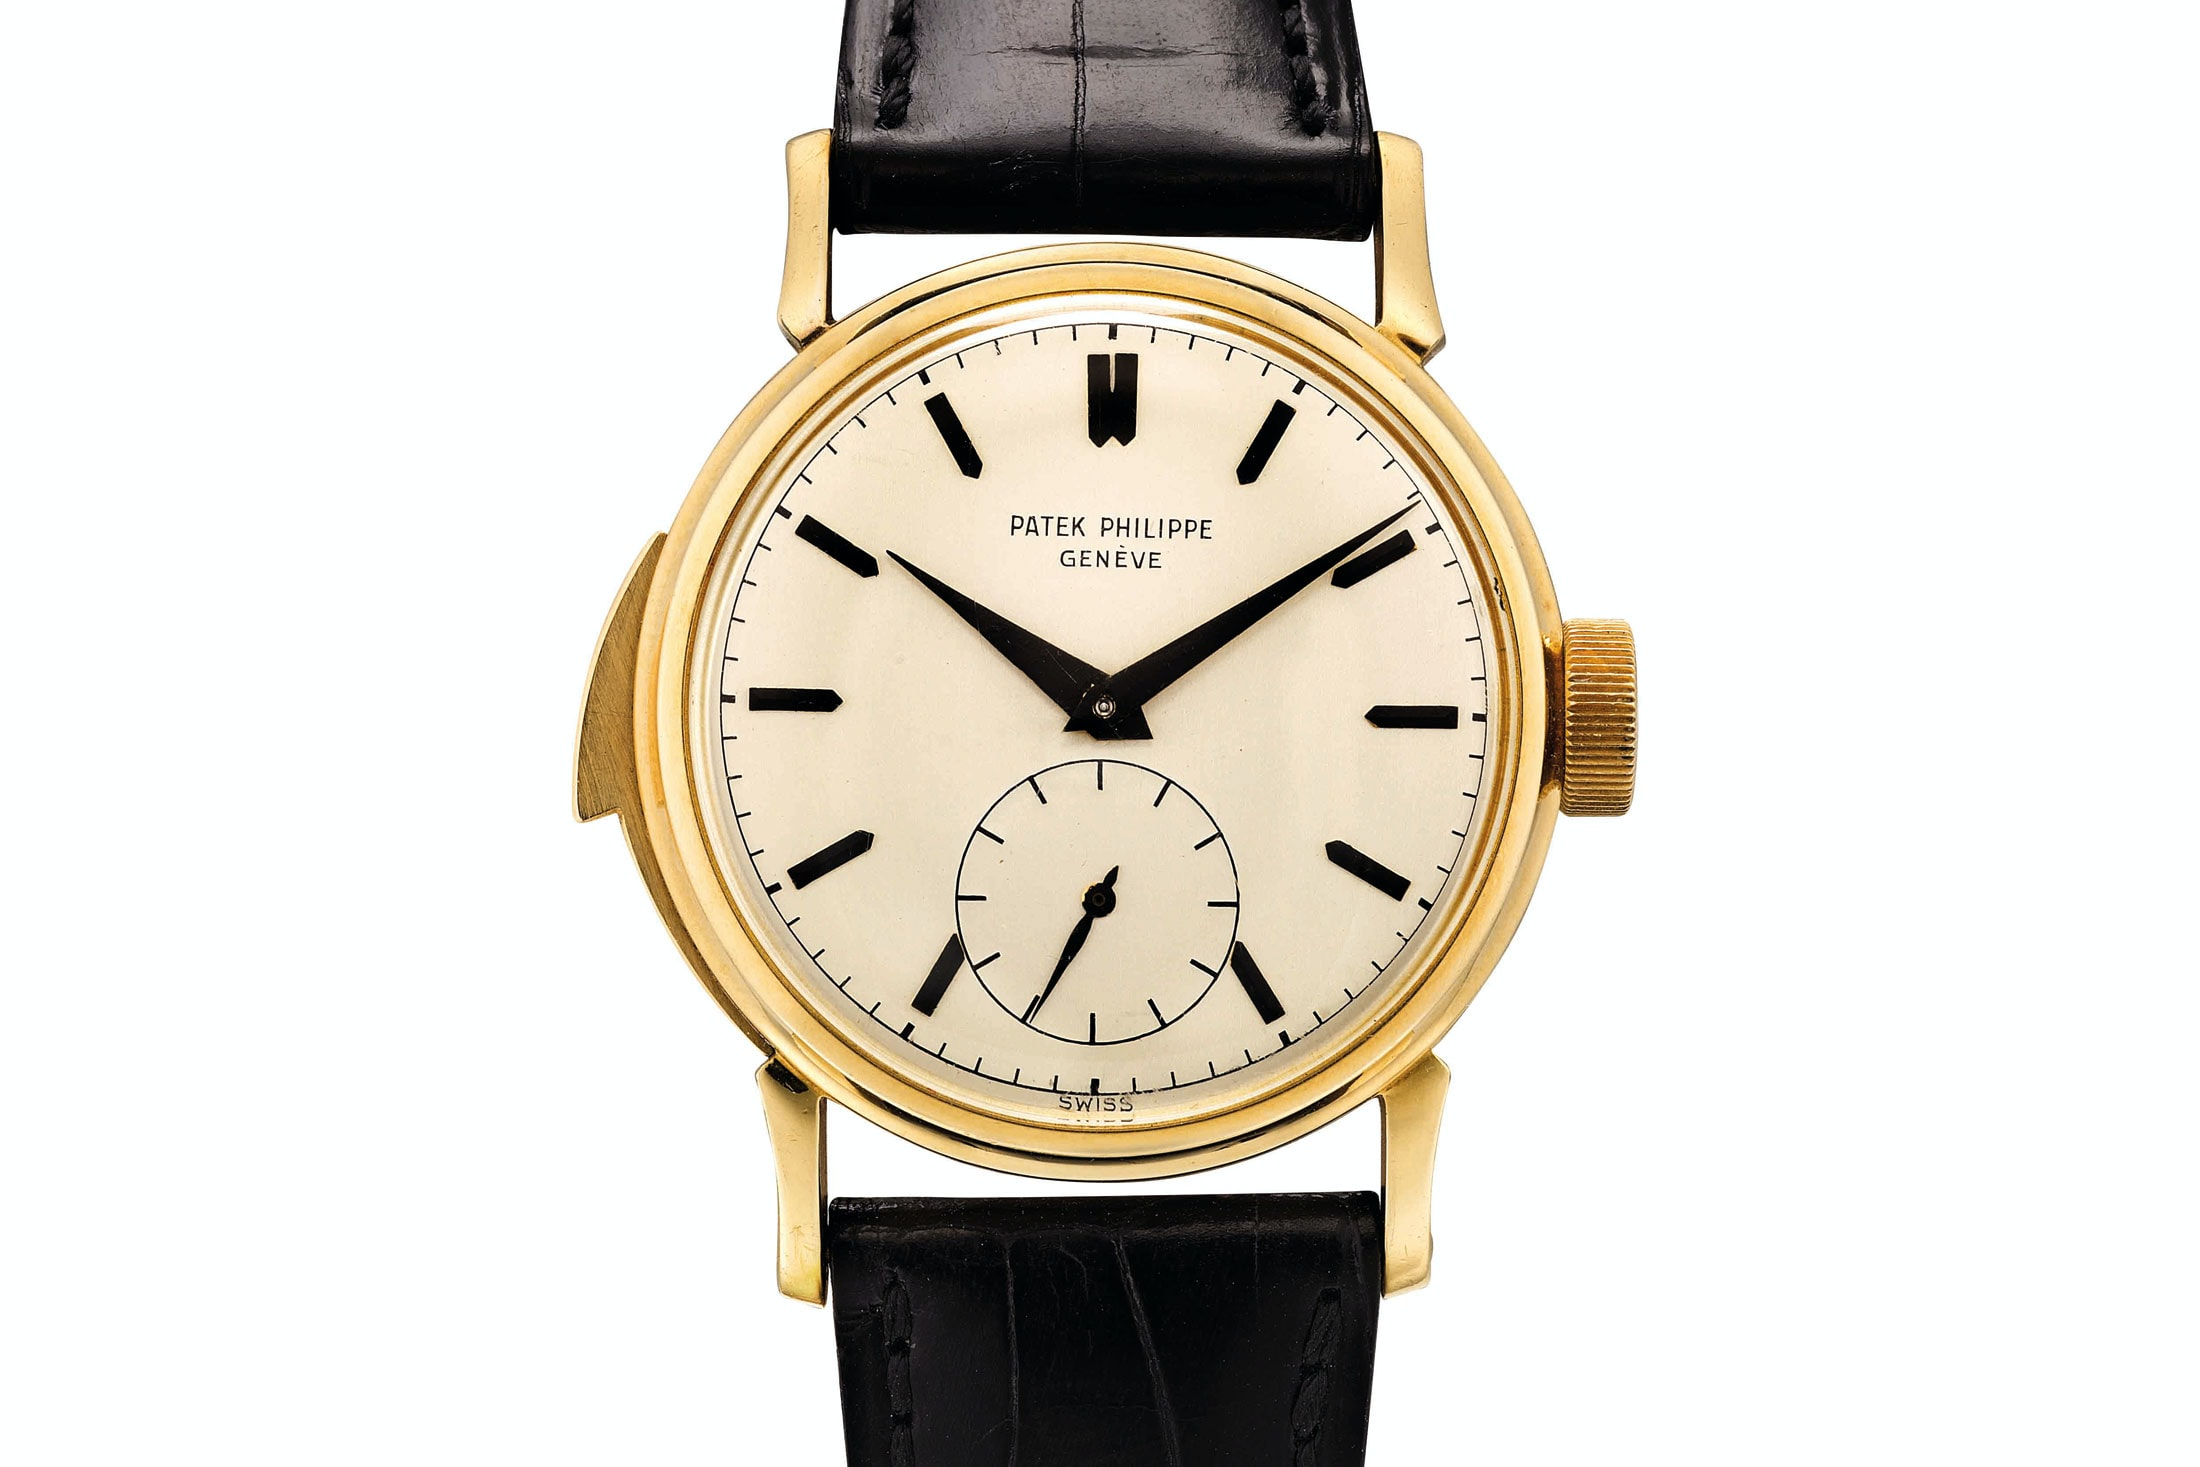 unique patek philippe reference 2419 phillips hong kong Found: A Pair Of Strikingly Similar Patek Philippe Minute Repeaters That Share More Than Just (Good) Looks Found: A Pair Of Strikingly Similar Patek Philippe Minute Repeaters That Share More Than Just (Good) Looks patek2